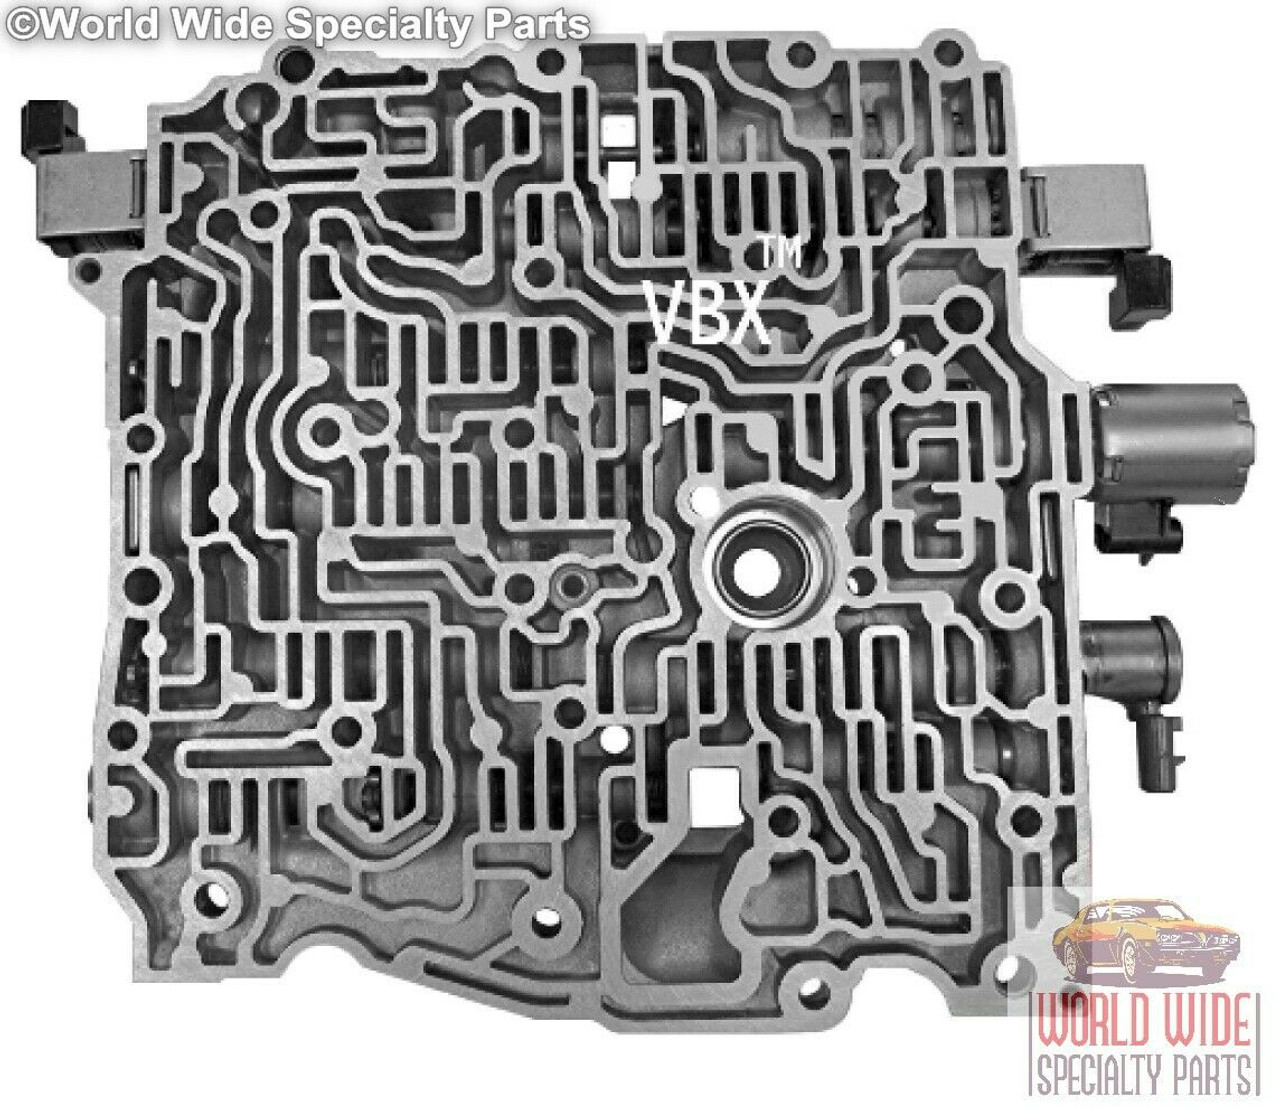 Volvo 4T65E Valve Body 1997-2002 with 848 Casting